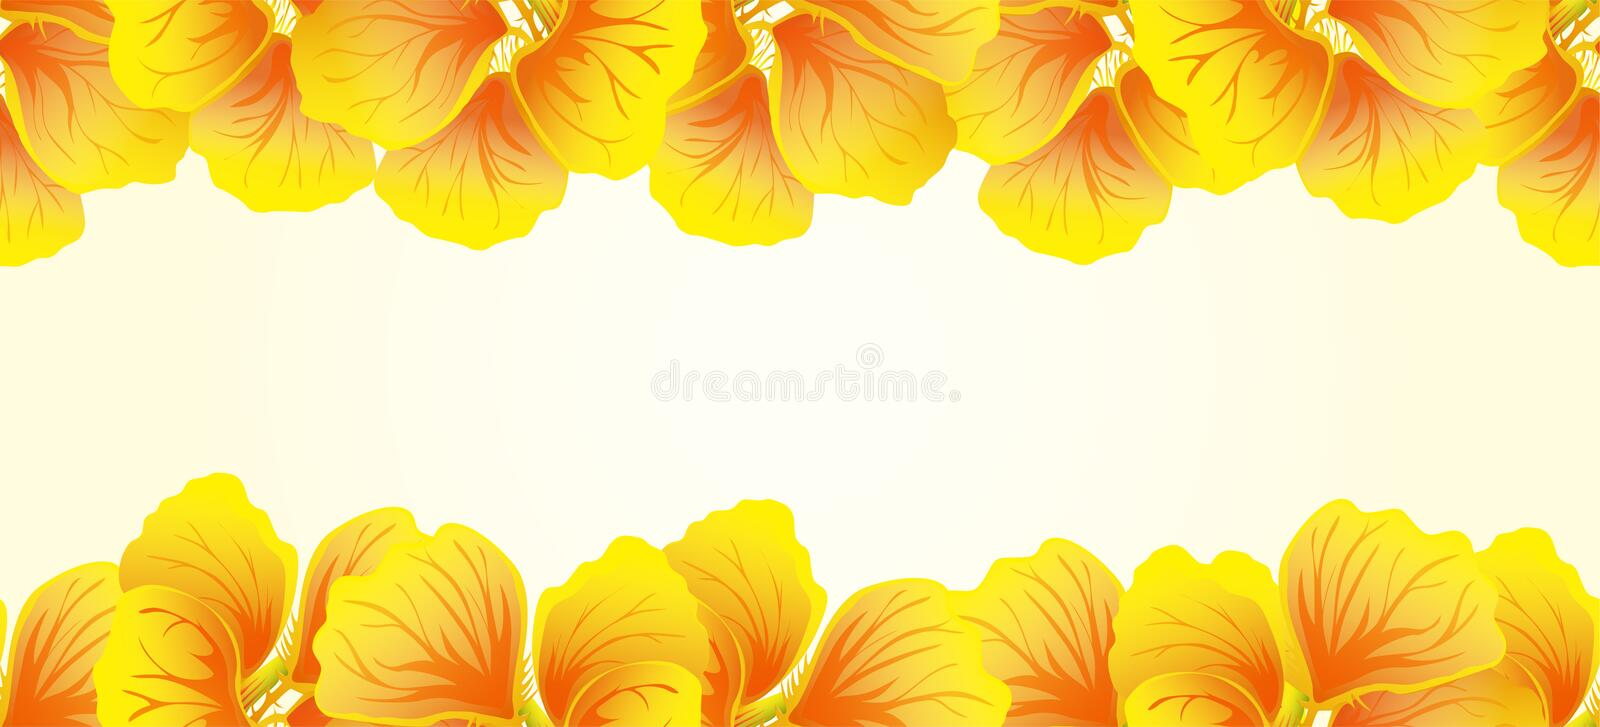 Bright Nasturtium Seamless border. Yellow flowers. Beautiful Horizontal banner. Light background. Card, invitation, poster. Greeting design. Vector royalty free illustration